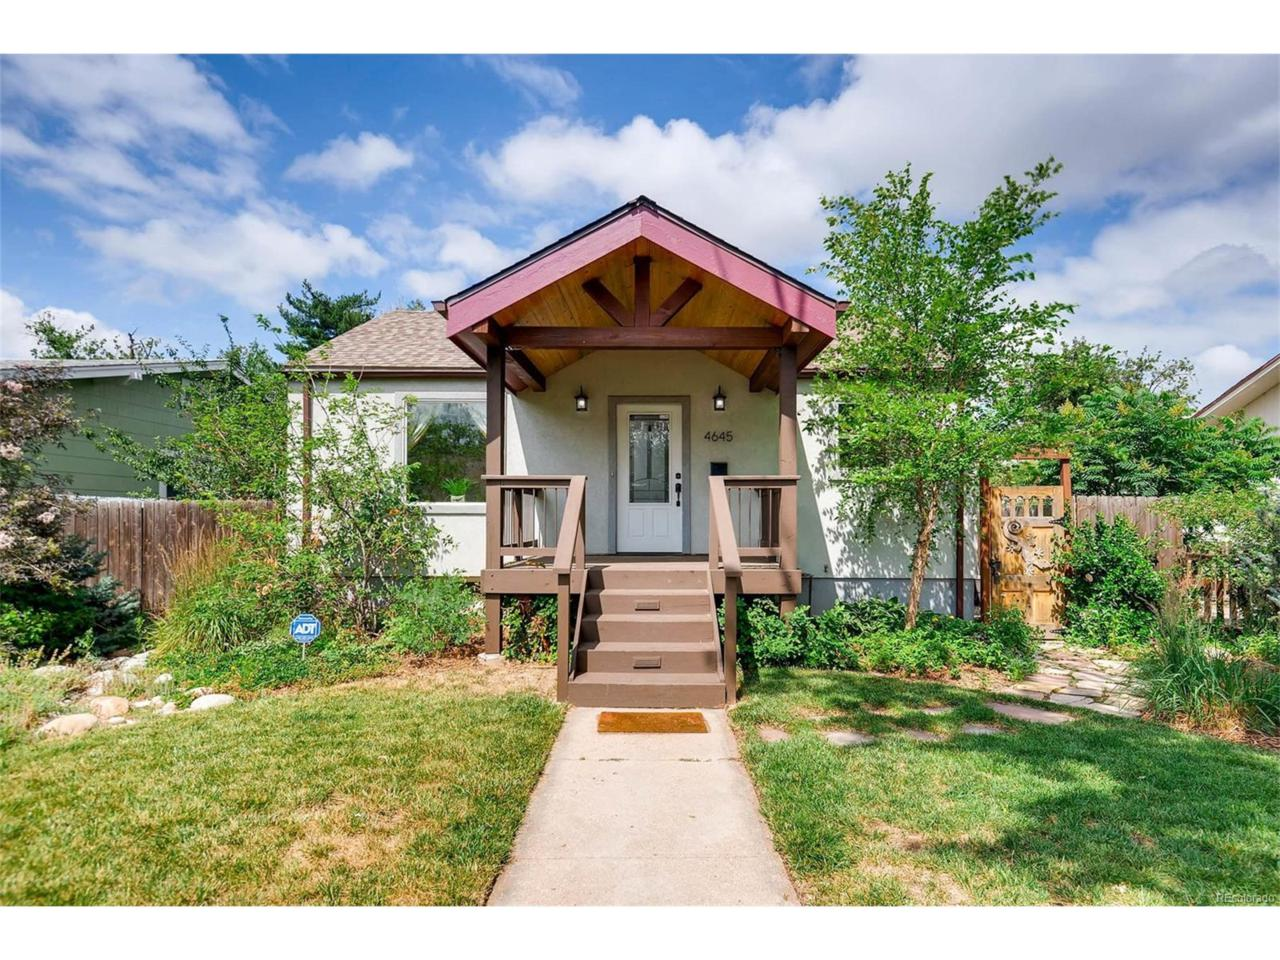 4645 Quitman Street, Denver, CO 80212 (MLS #5963576) :: 8z Real Estate